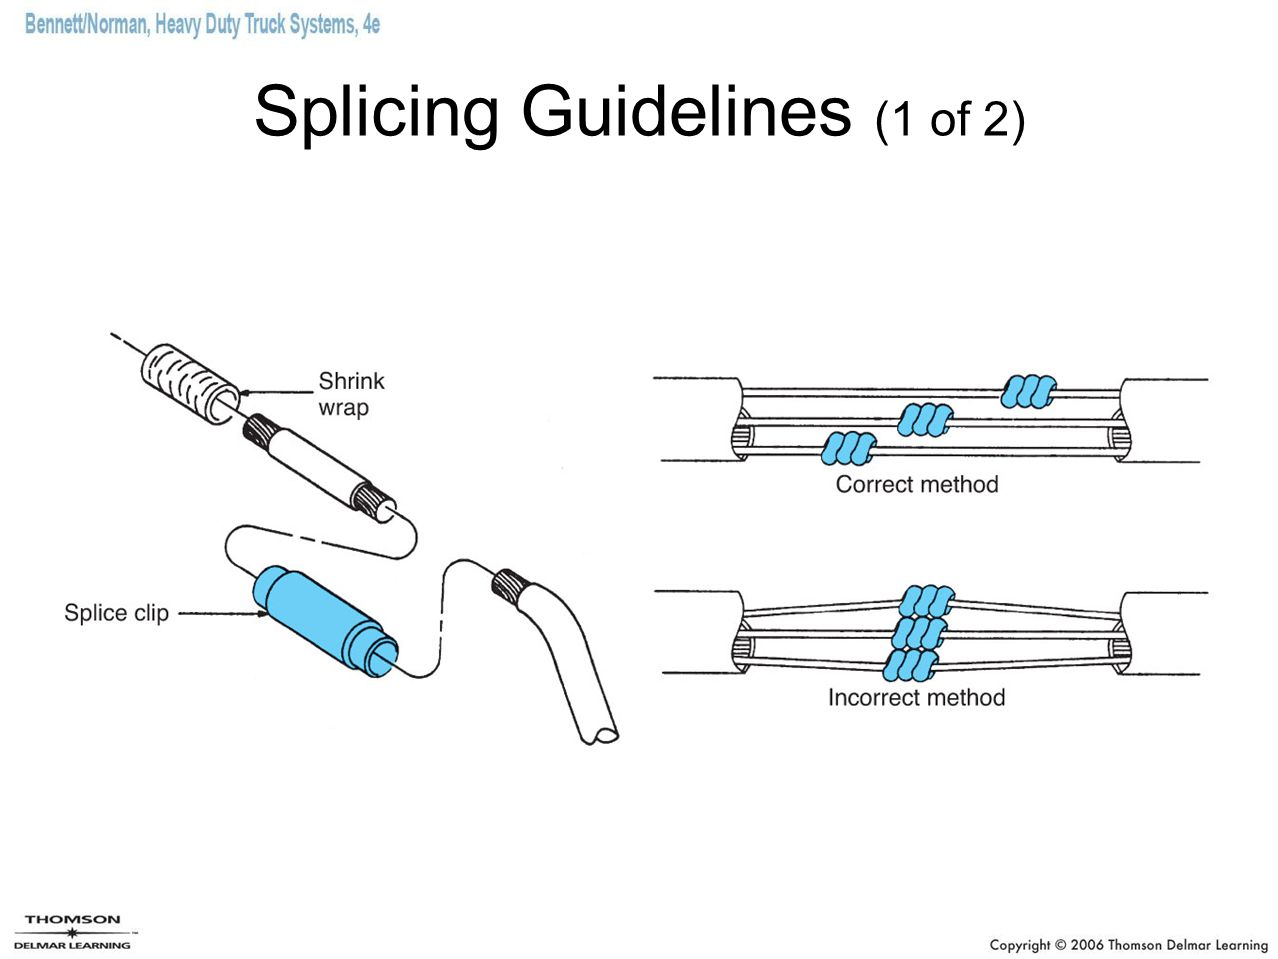 Splicing Guidelines (1 of 2)